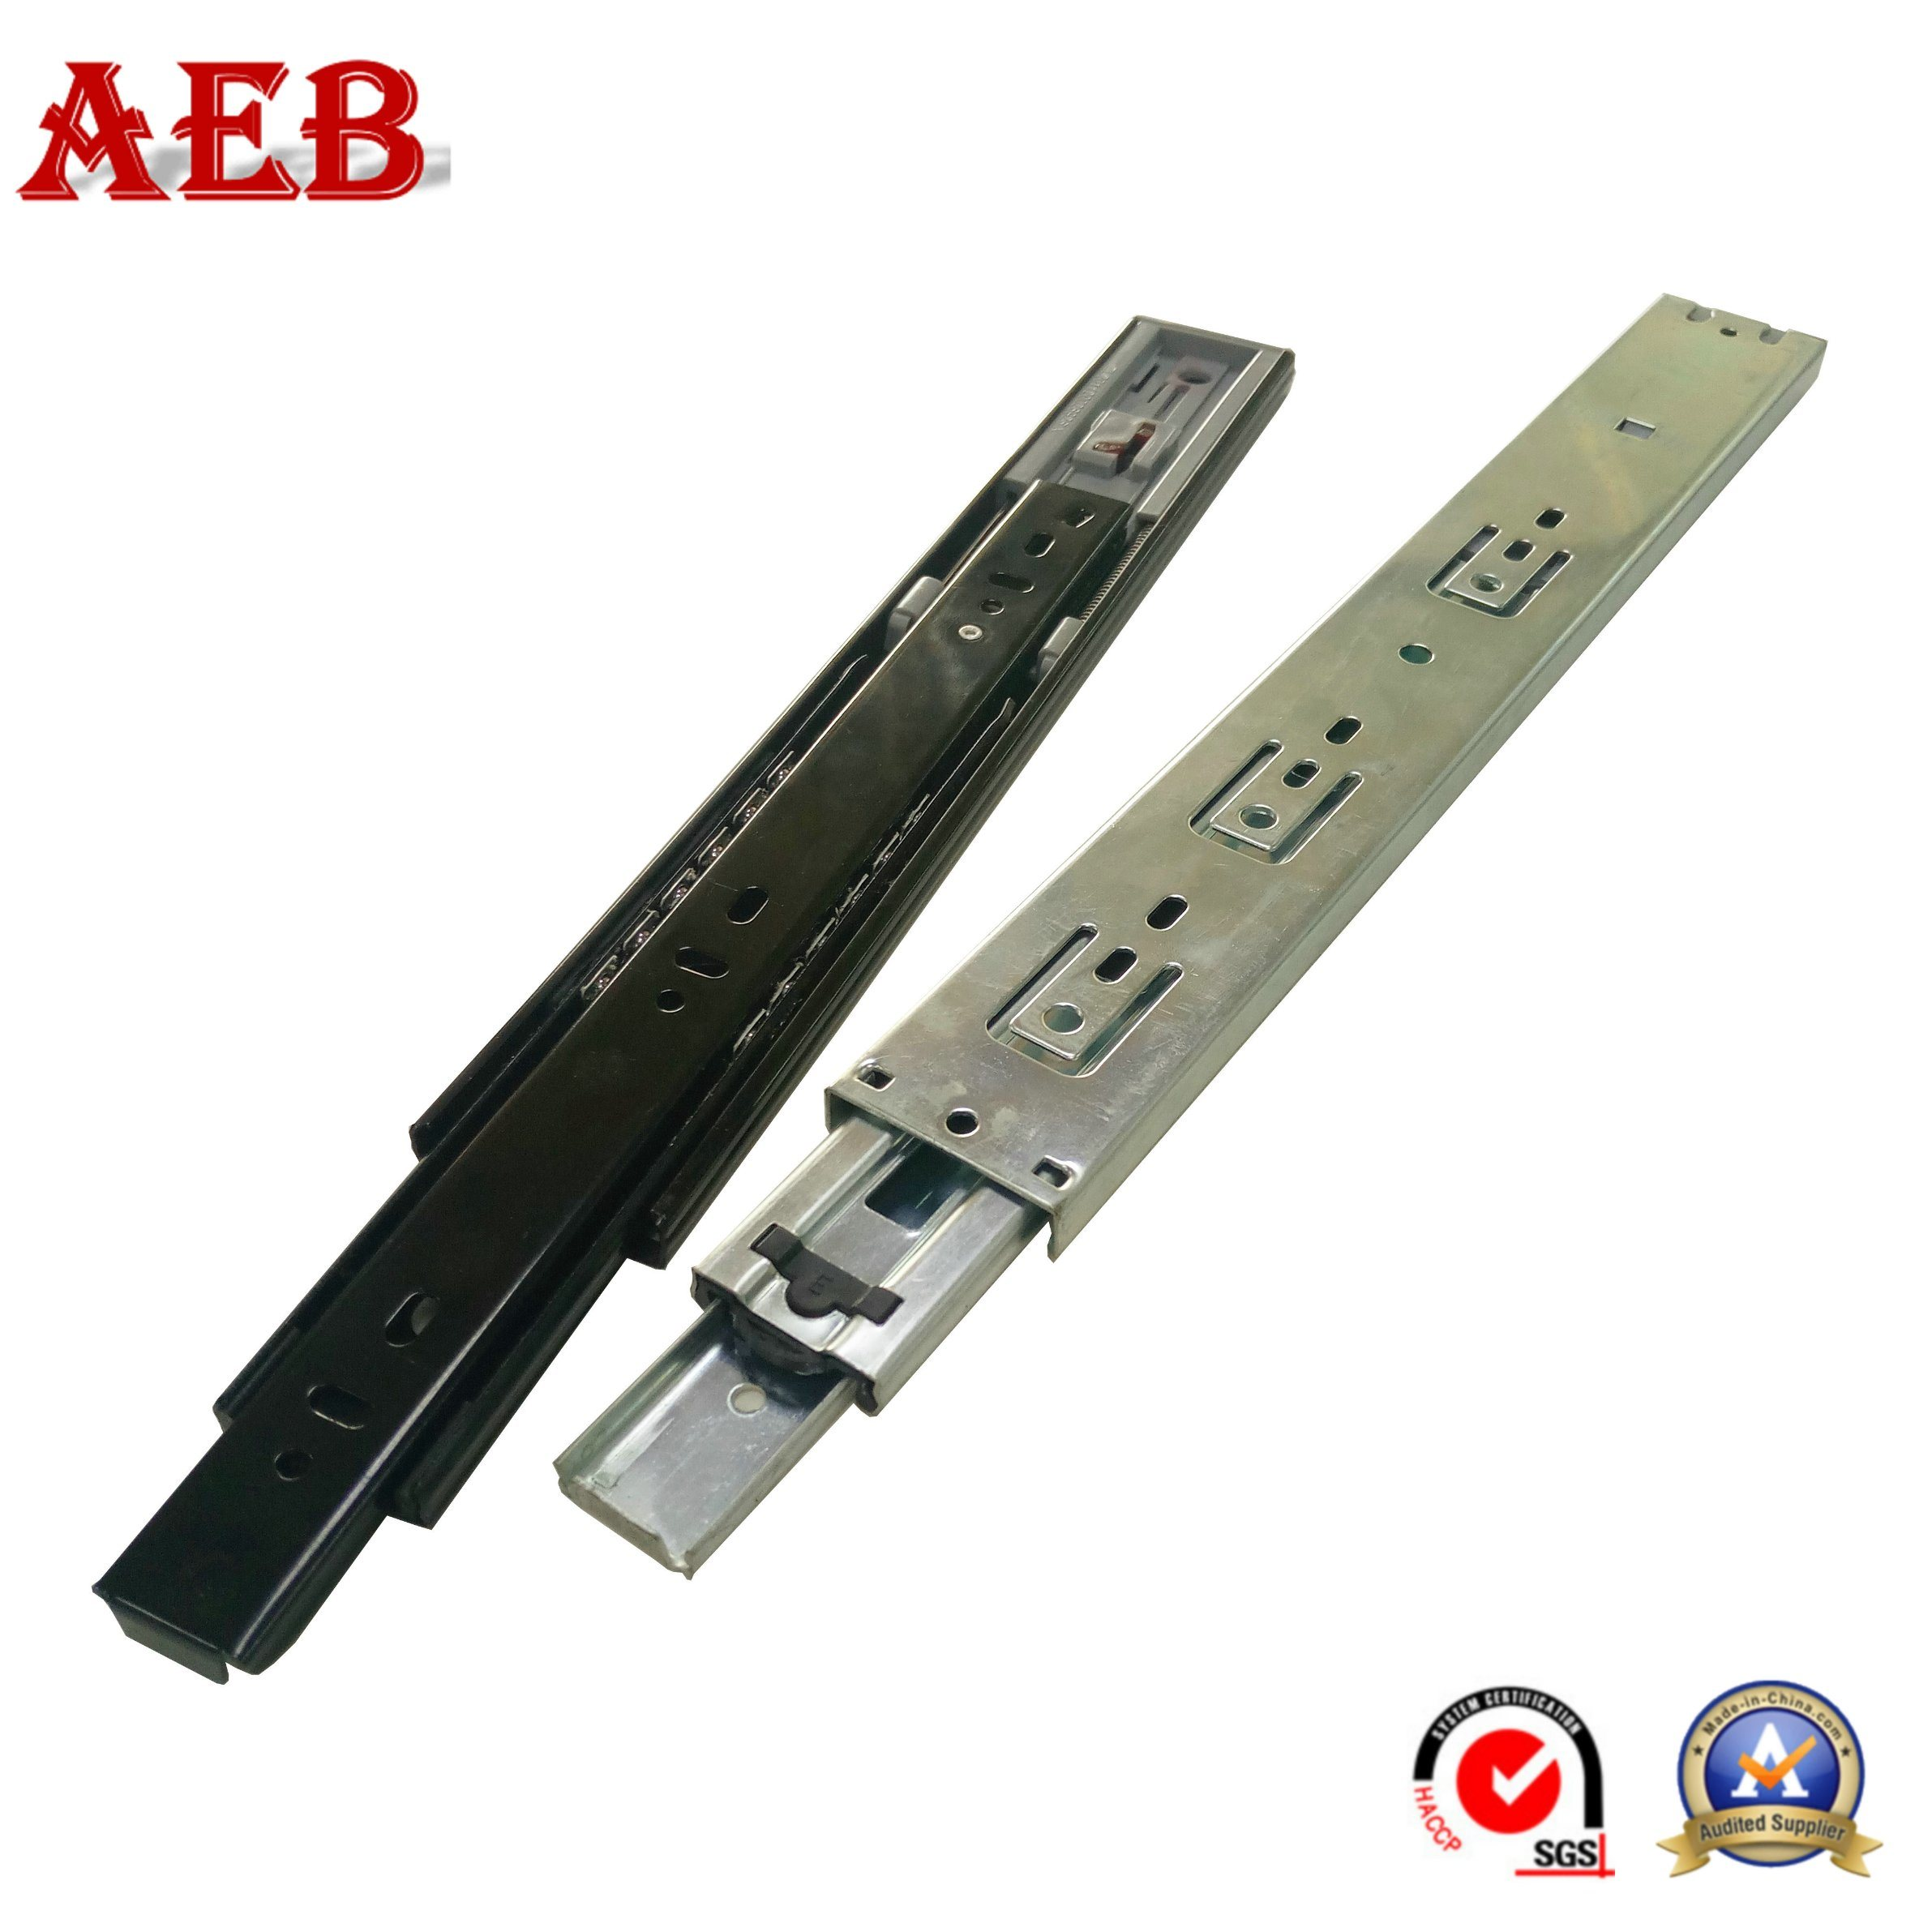 slide fold bearing drawer product linear extension rails ball slides china of full lspjxyoseukc industrial